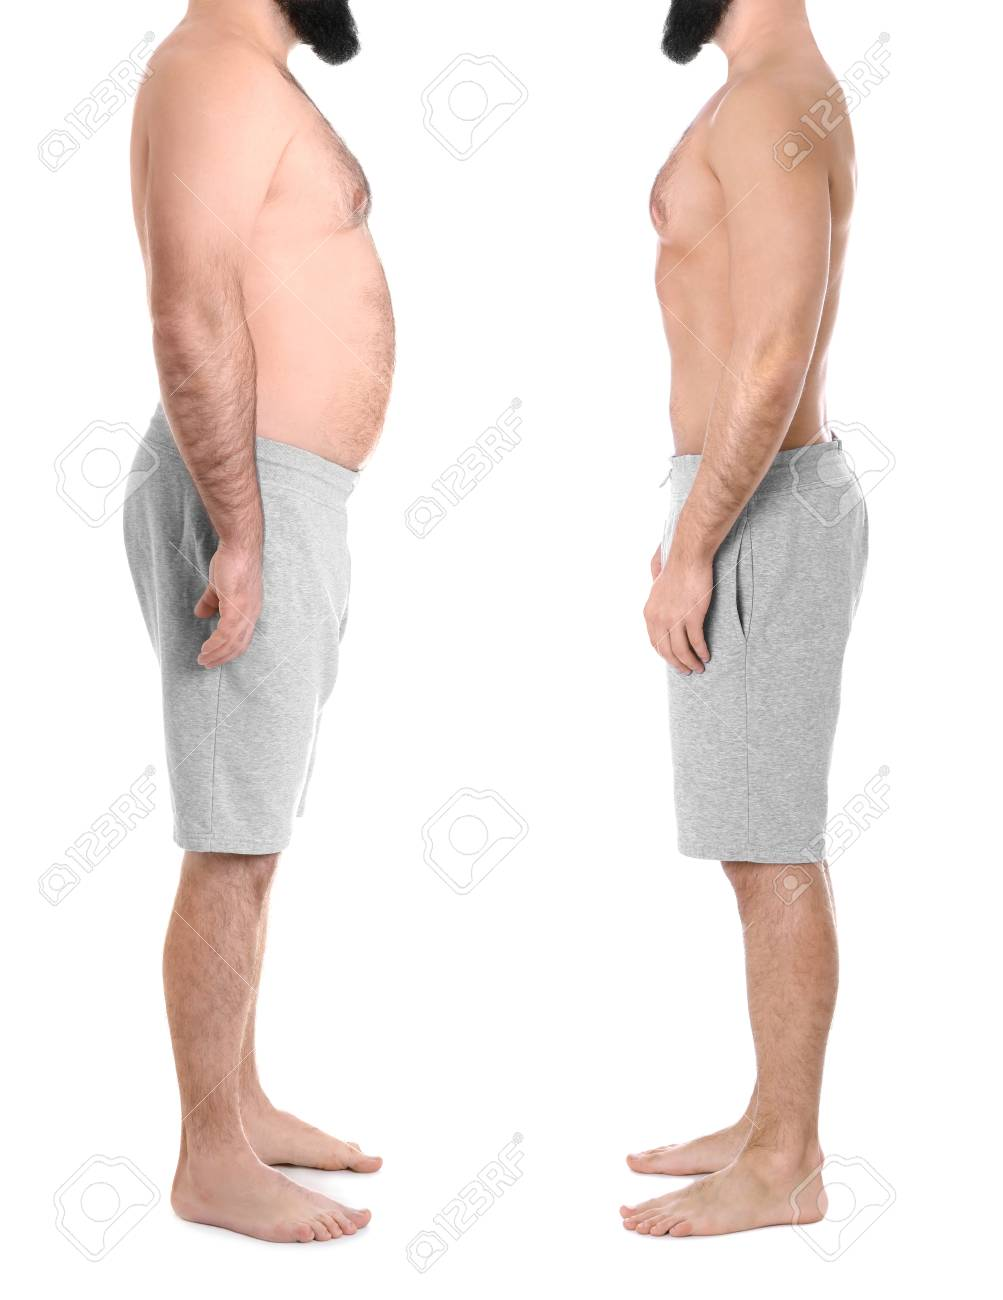 Overweight Man Before And After Weight Loss On White Background 1003x1300